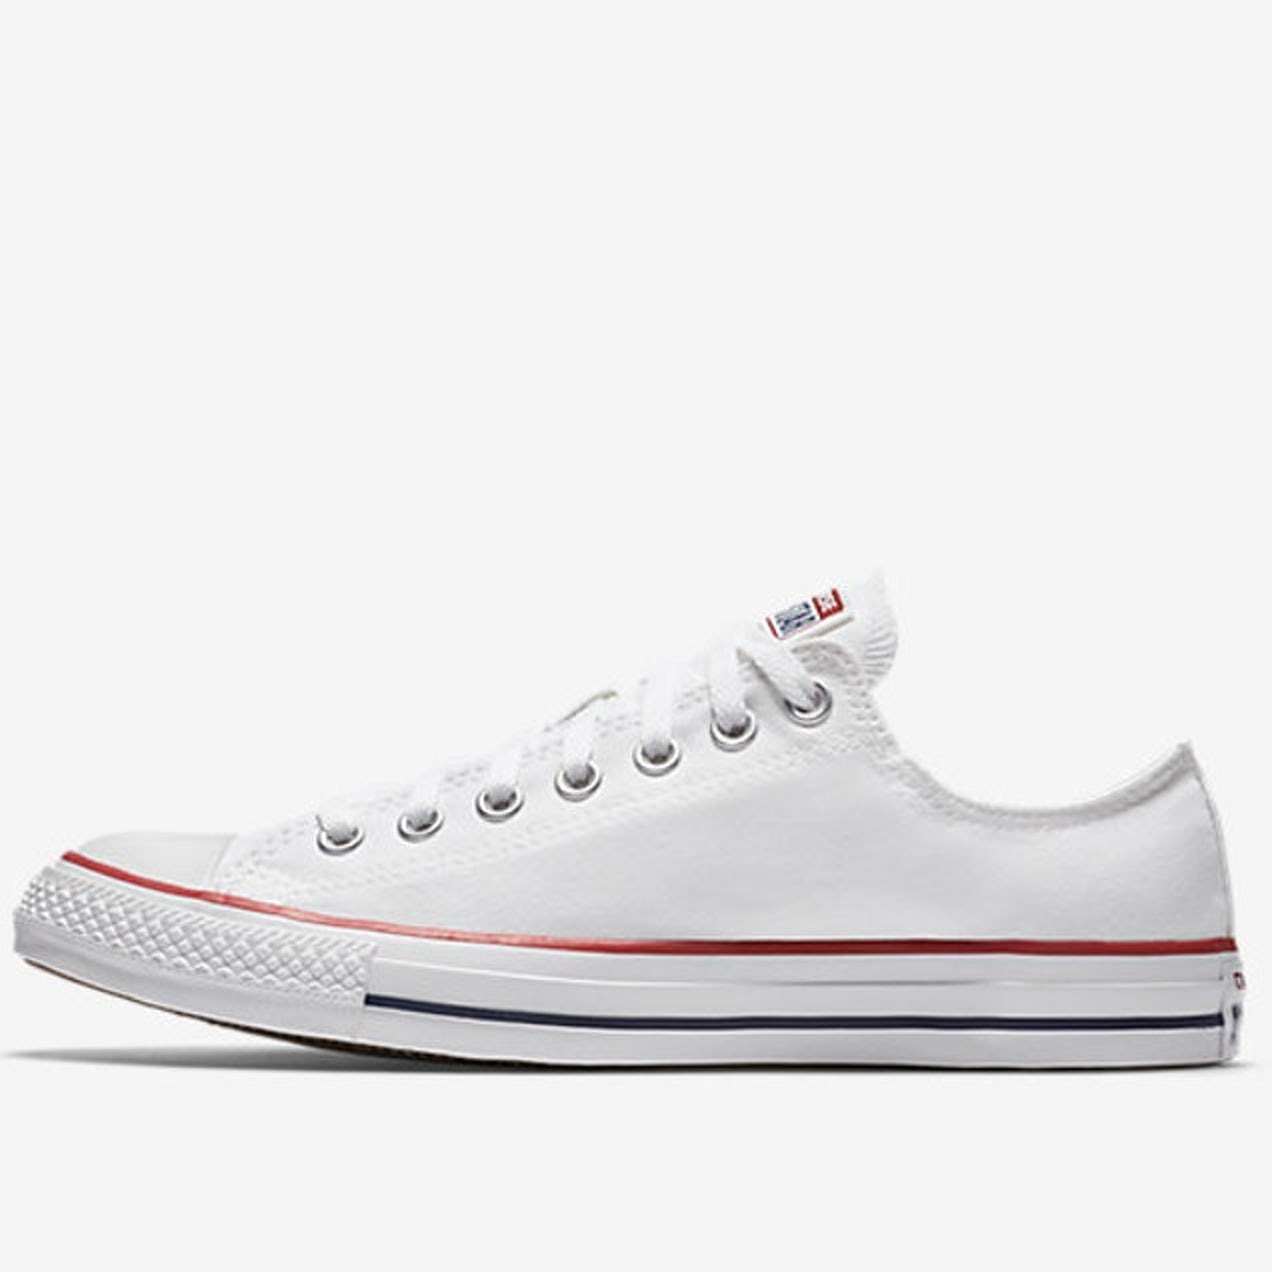 c12658c597a 50 Iconic Sneakers Under  150 That Are Still Dope    ONE37pm